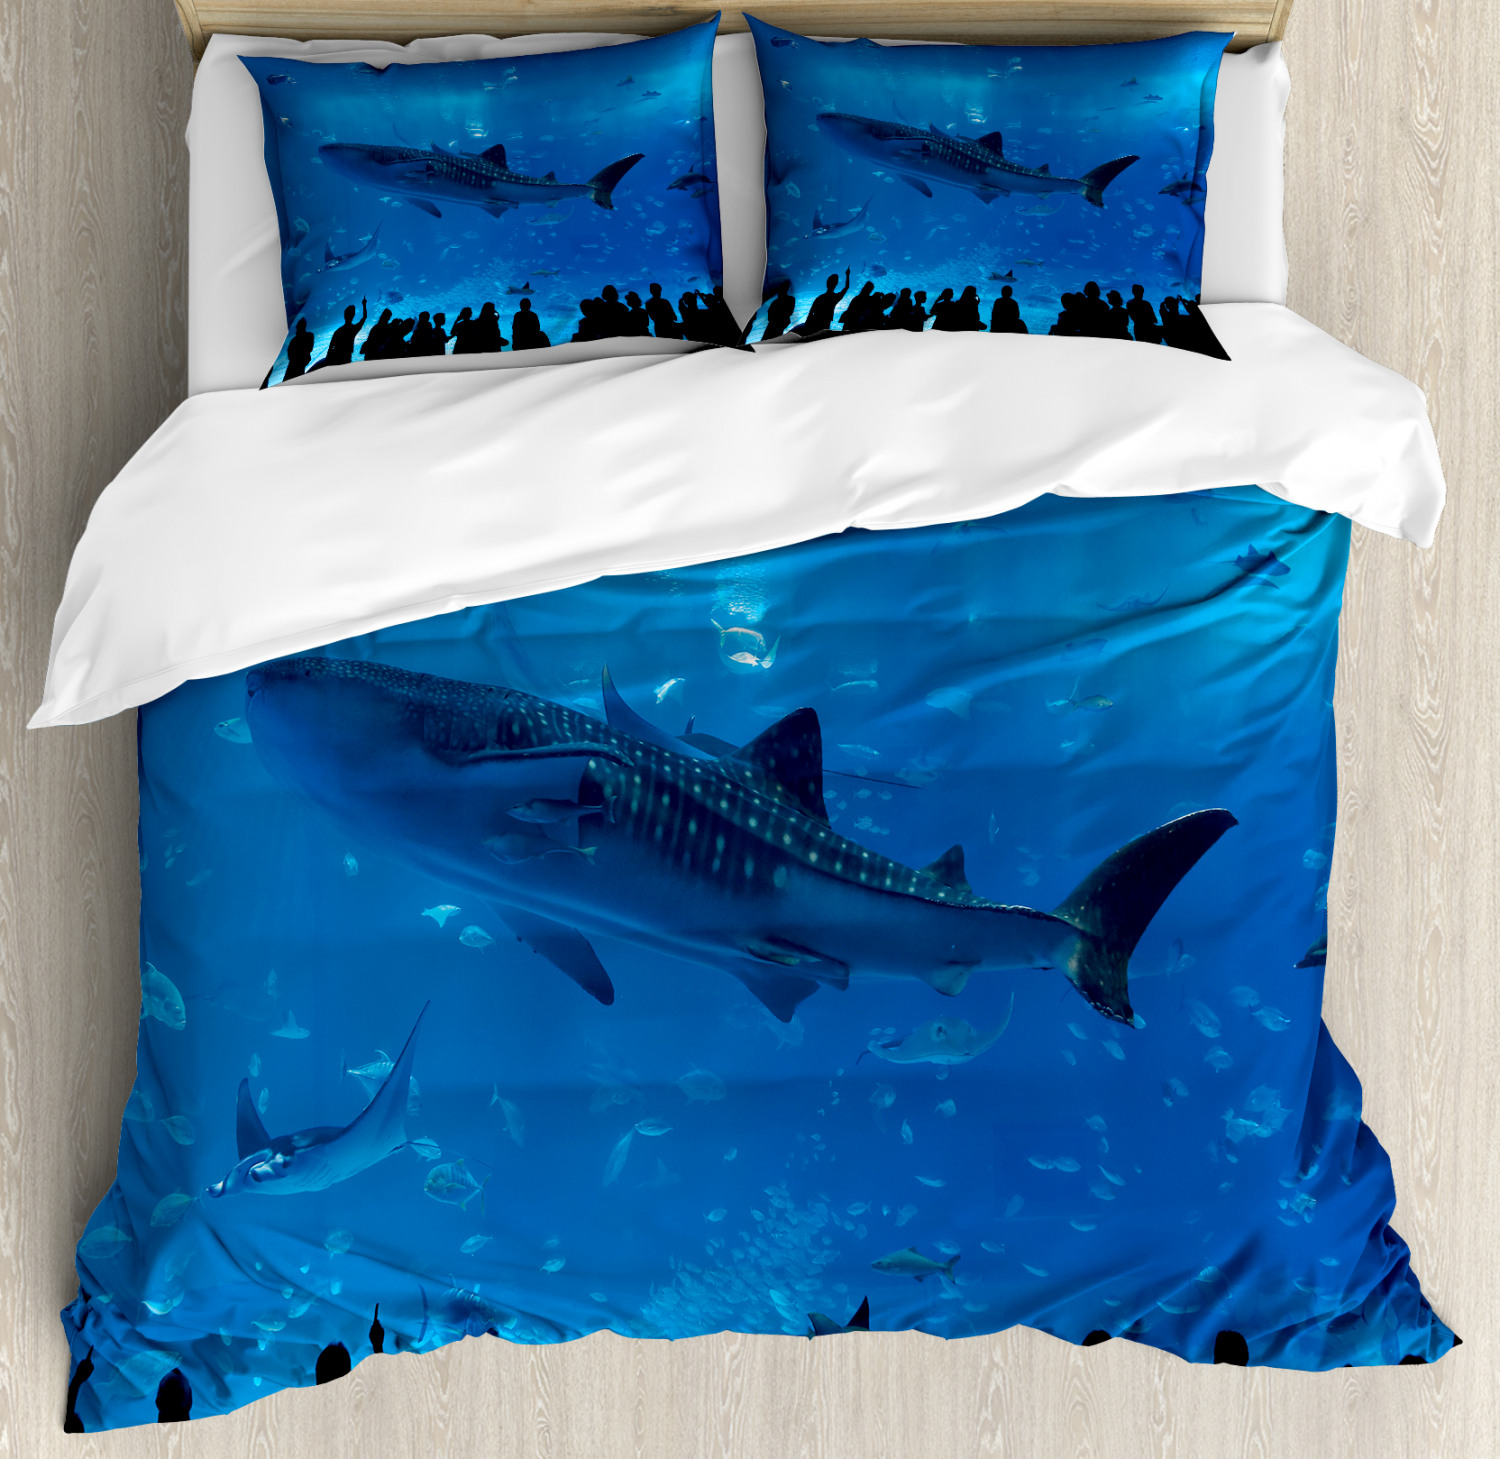 Shark Duvet Cover Set with Pillow Shams Aquarium Park and People Print